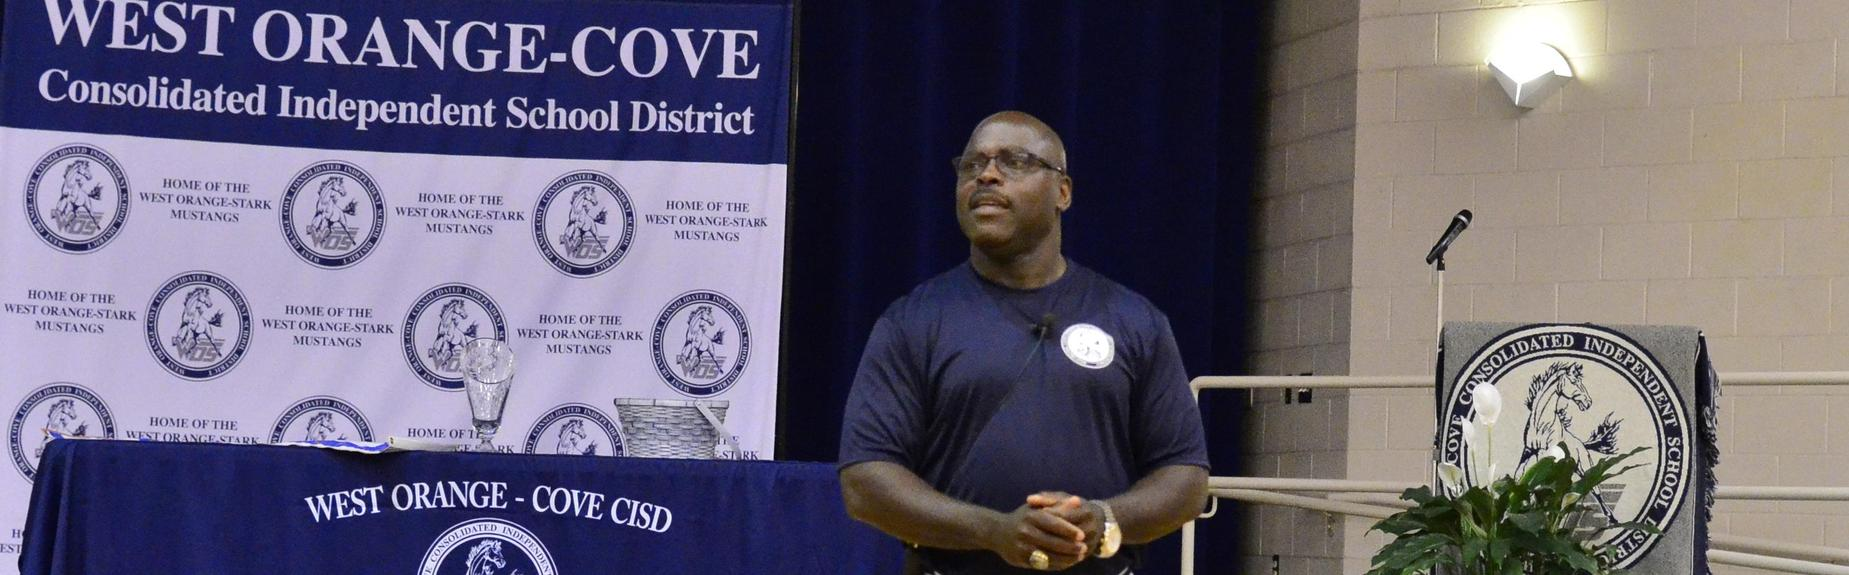 WOCCISD Superintendent Dr. Rickie Harris welcomes staff to the 2019-2020 District Convocation and new school year.